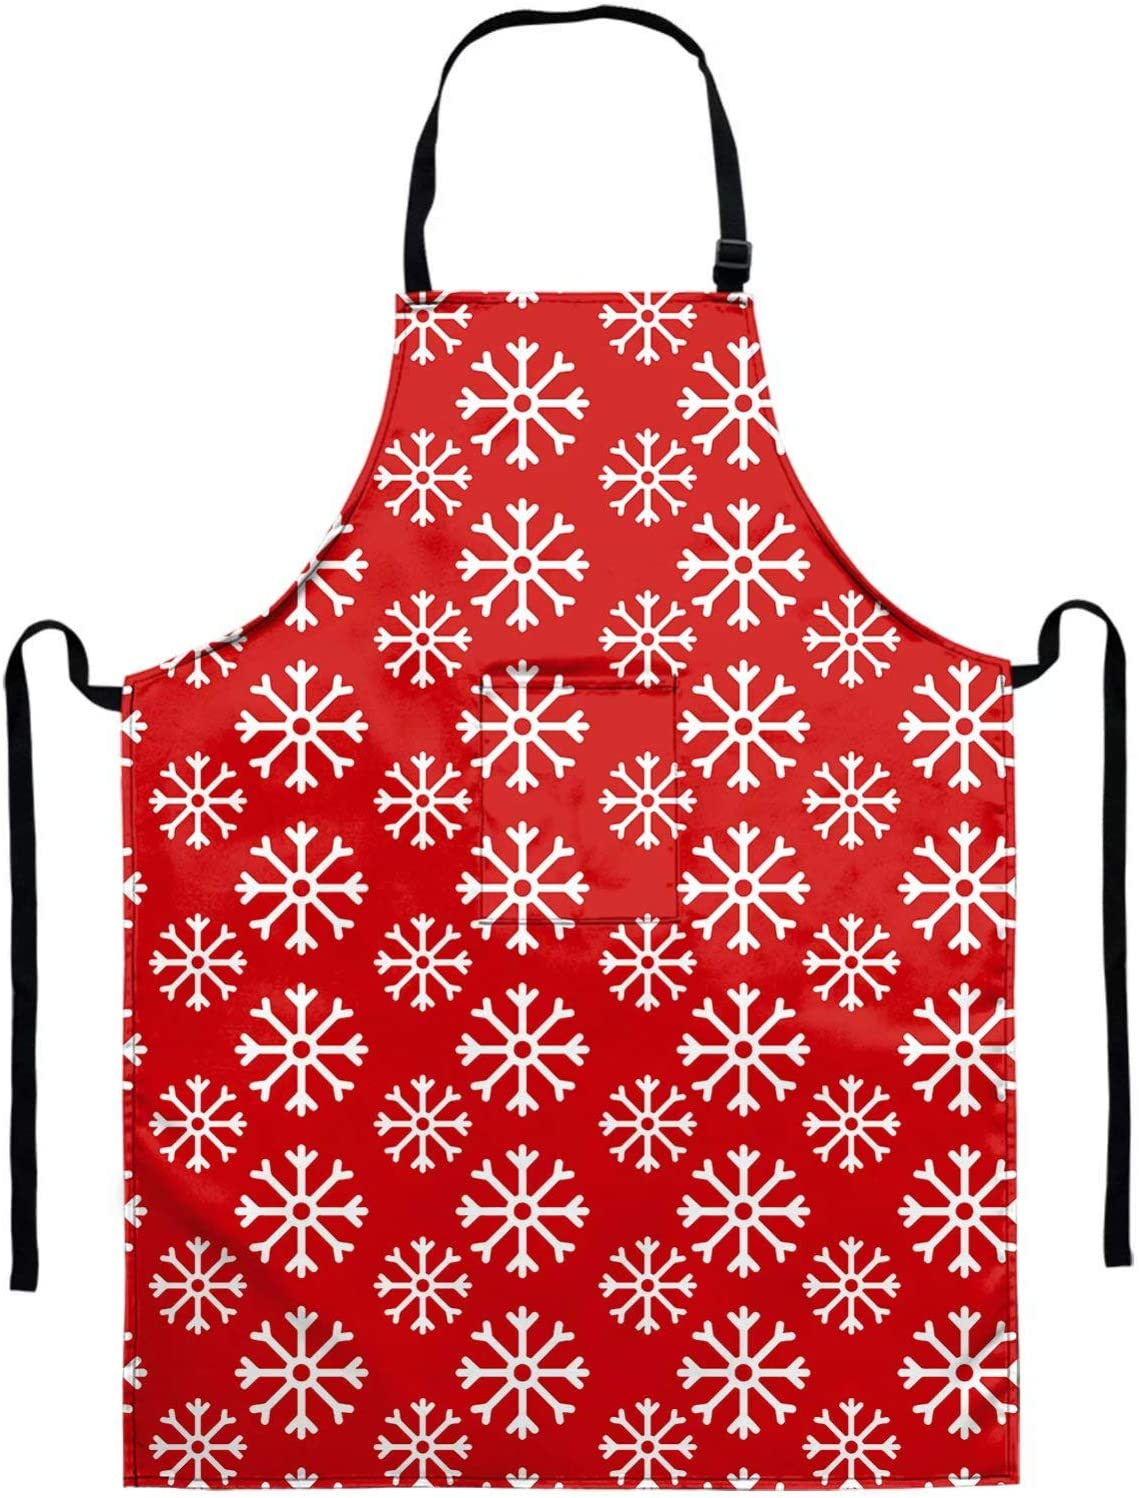 GIFTPUZZ Snowflakes Print Apron Women's Kitchen Apron Adjustable Cooking Baking Garden Chef Apron with Deep Pocket Great Gift for Wife Husband Bakers Waterproof Machine Washable Aprons Christmas Red